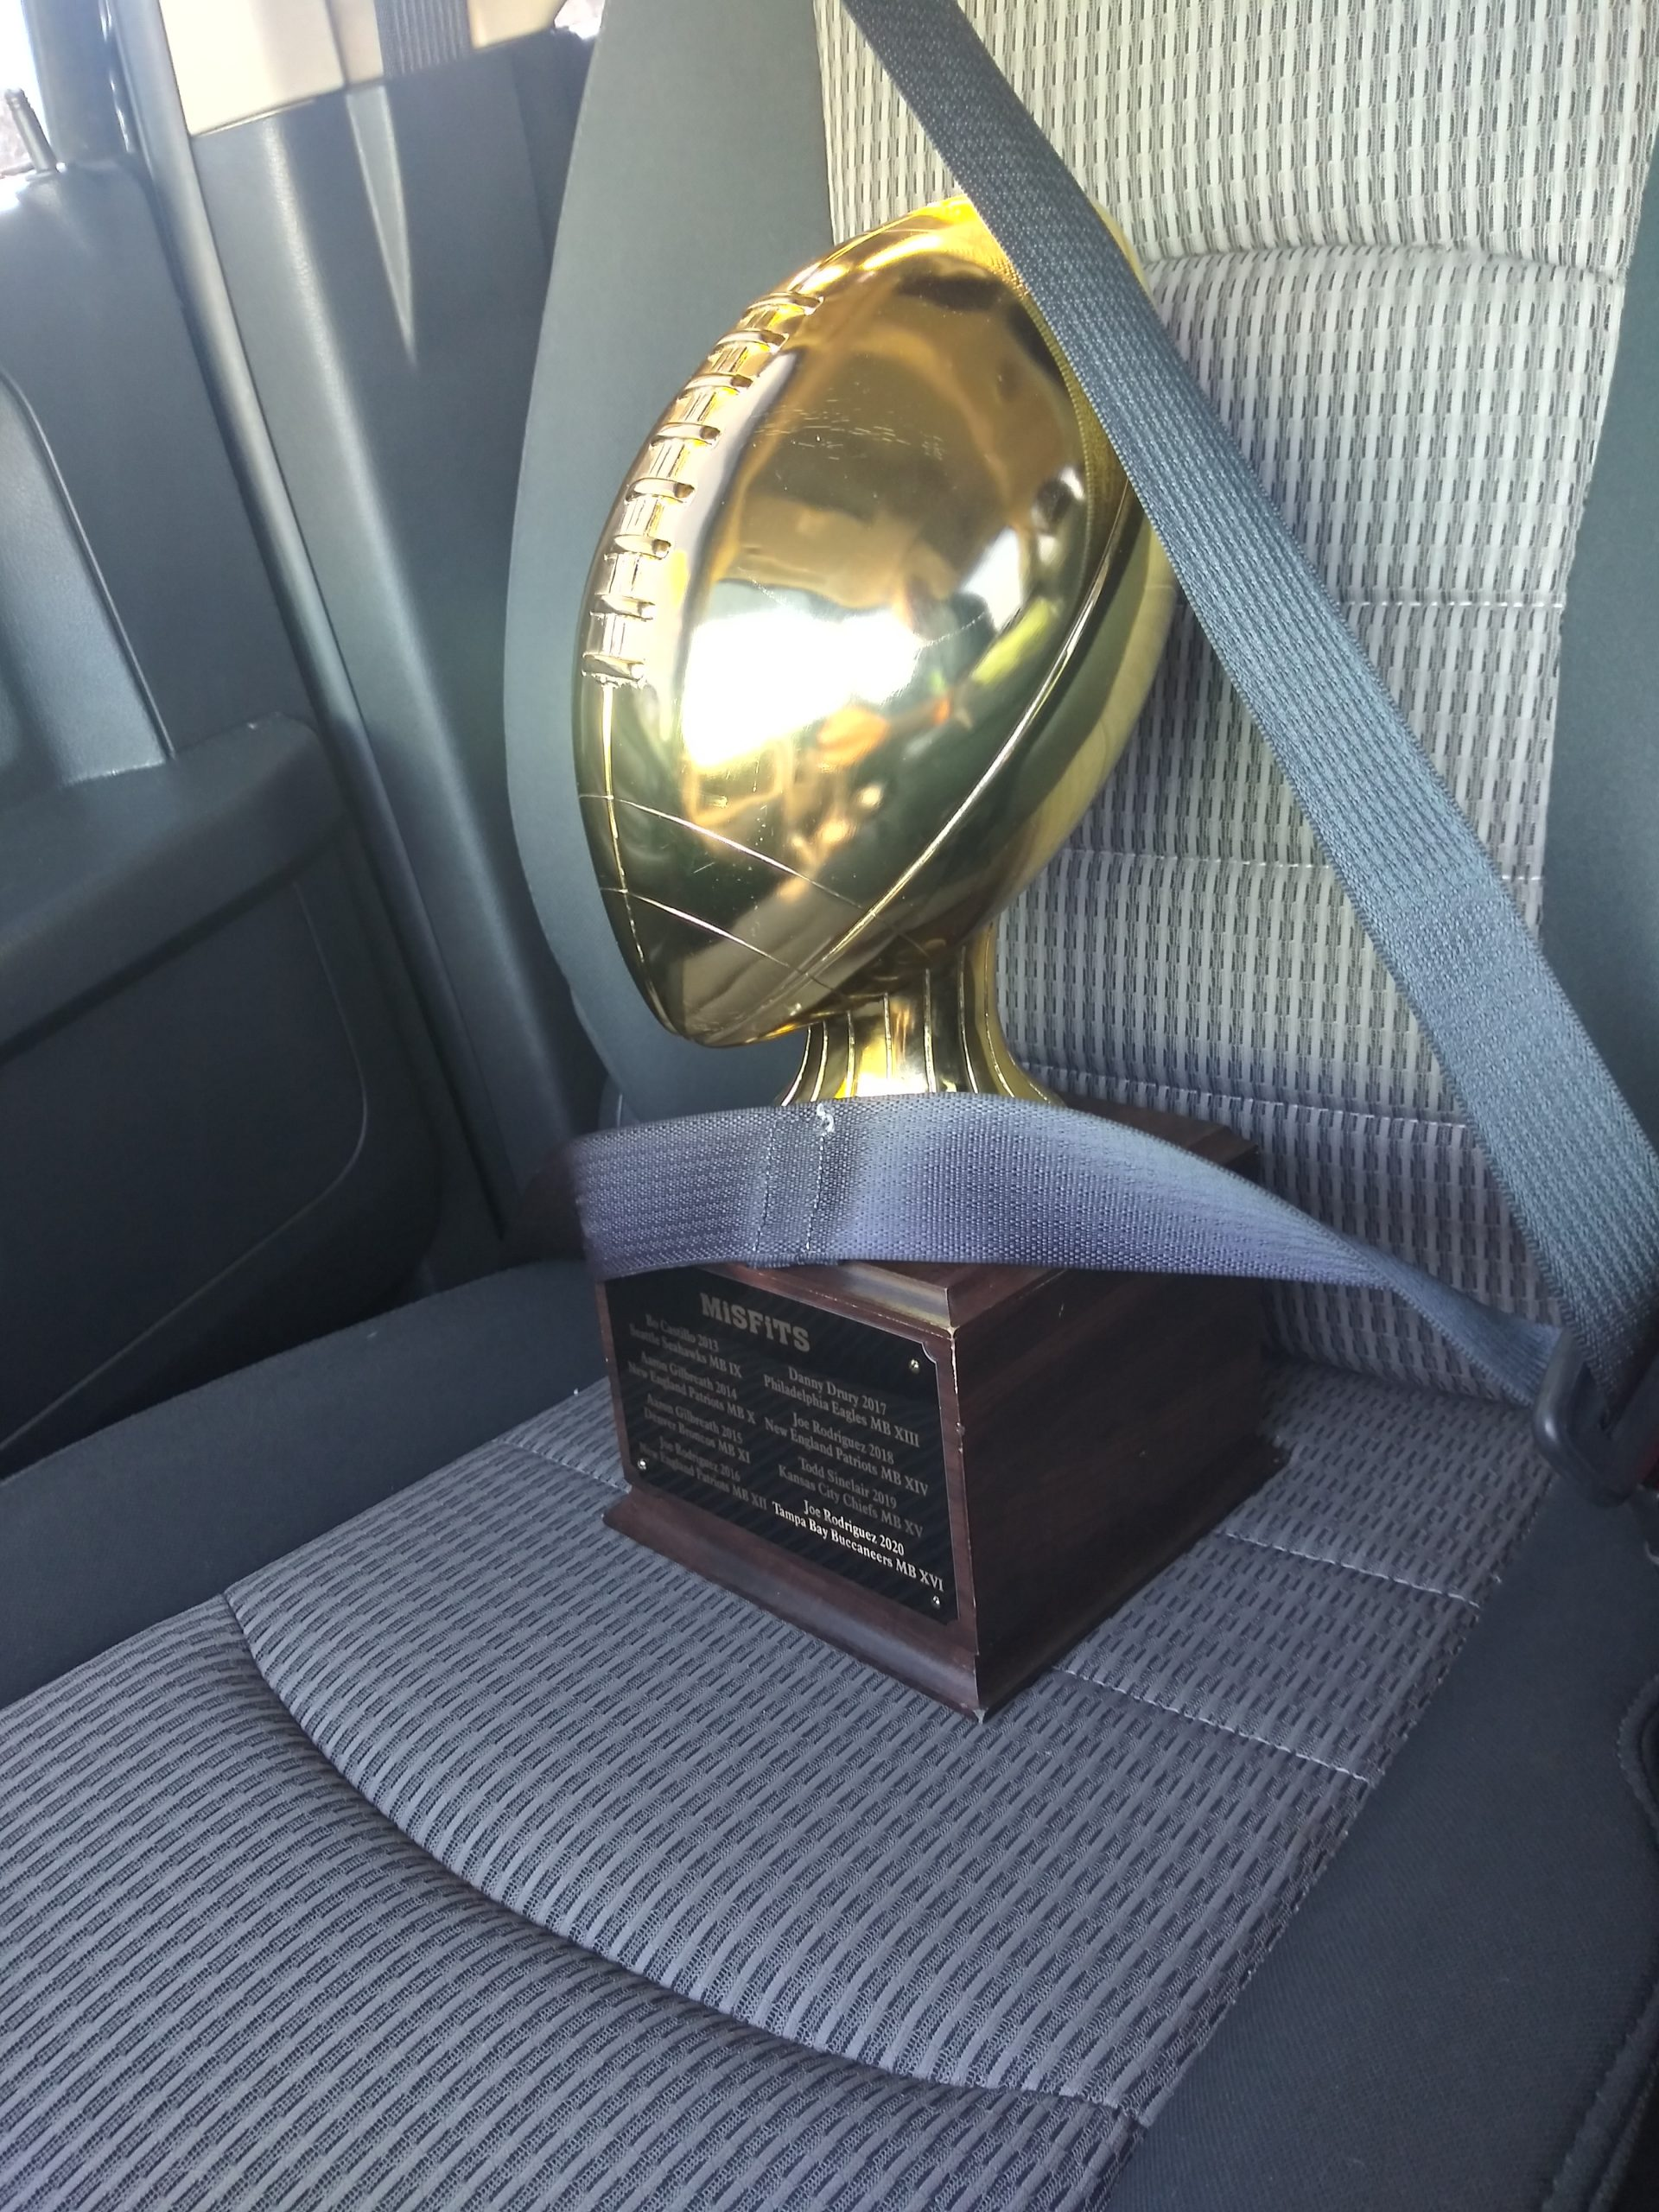 Bringing our 2020 Misfits XVI Pick Em' League trophy home safely. 3 out of the last 5 years, I